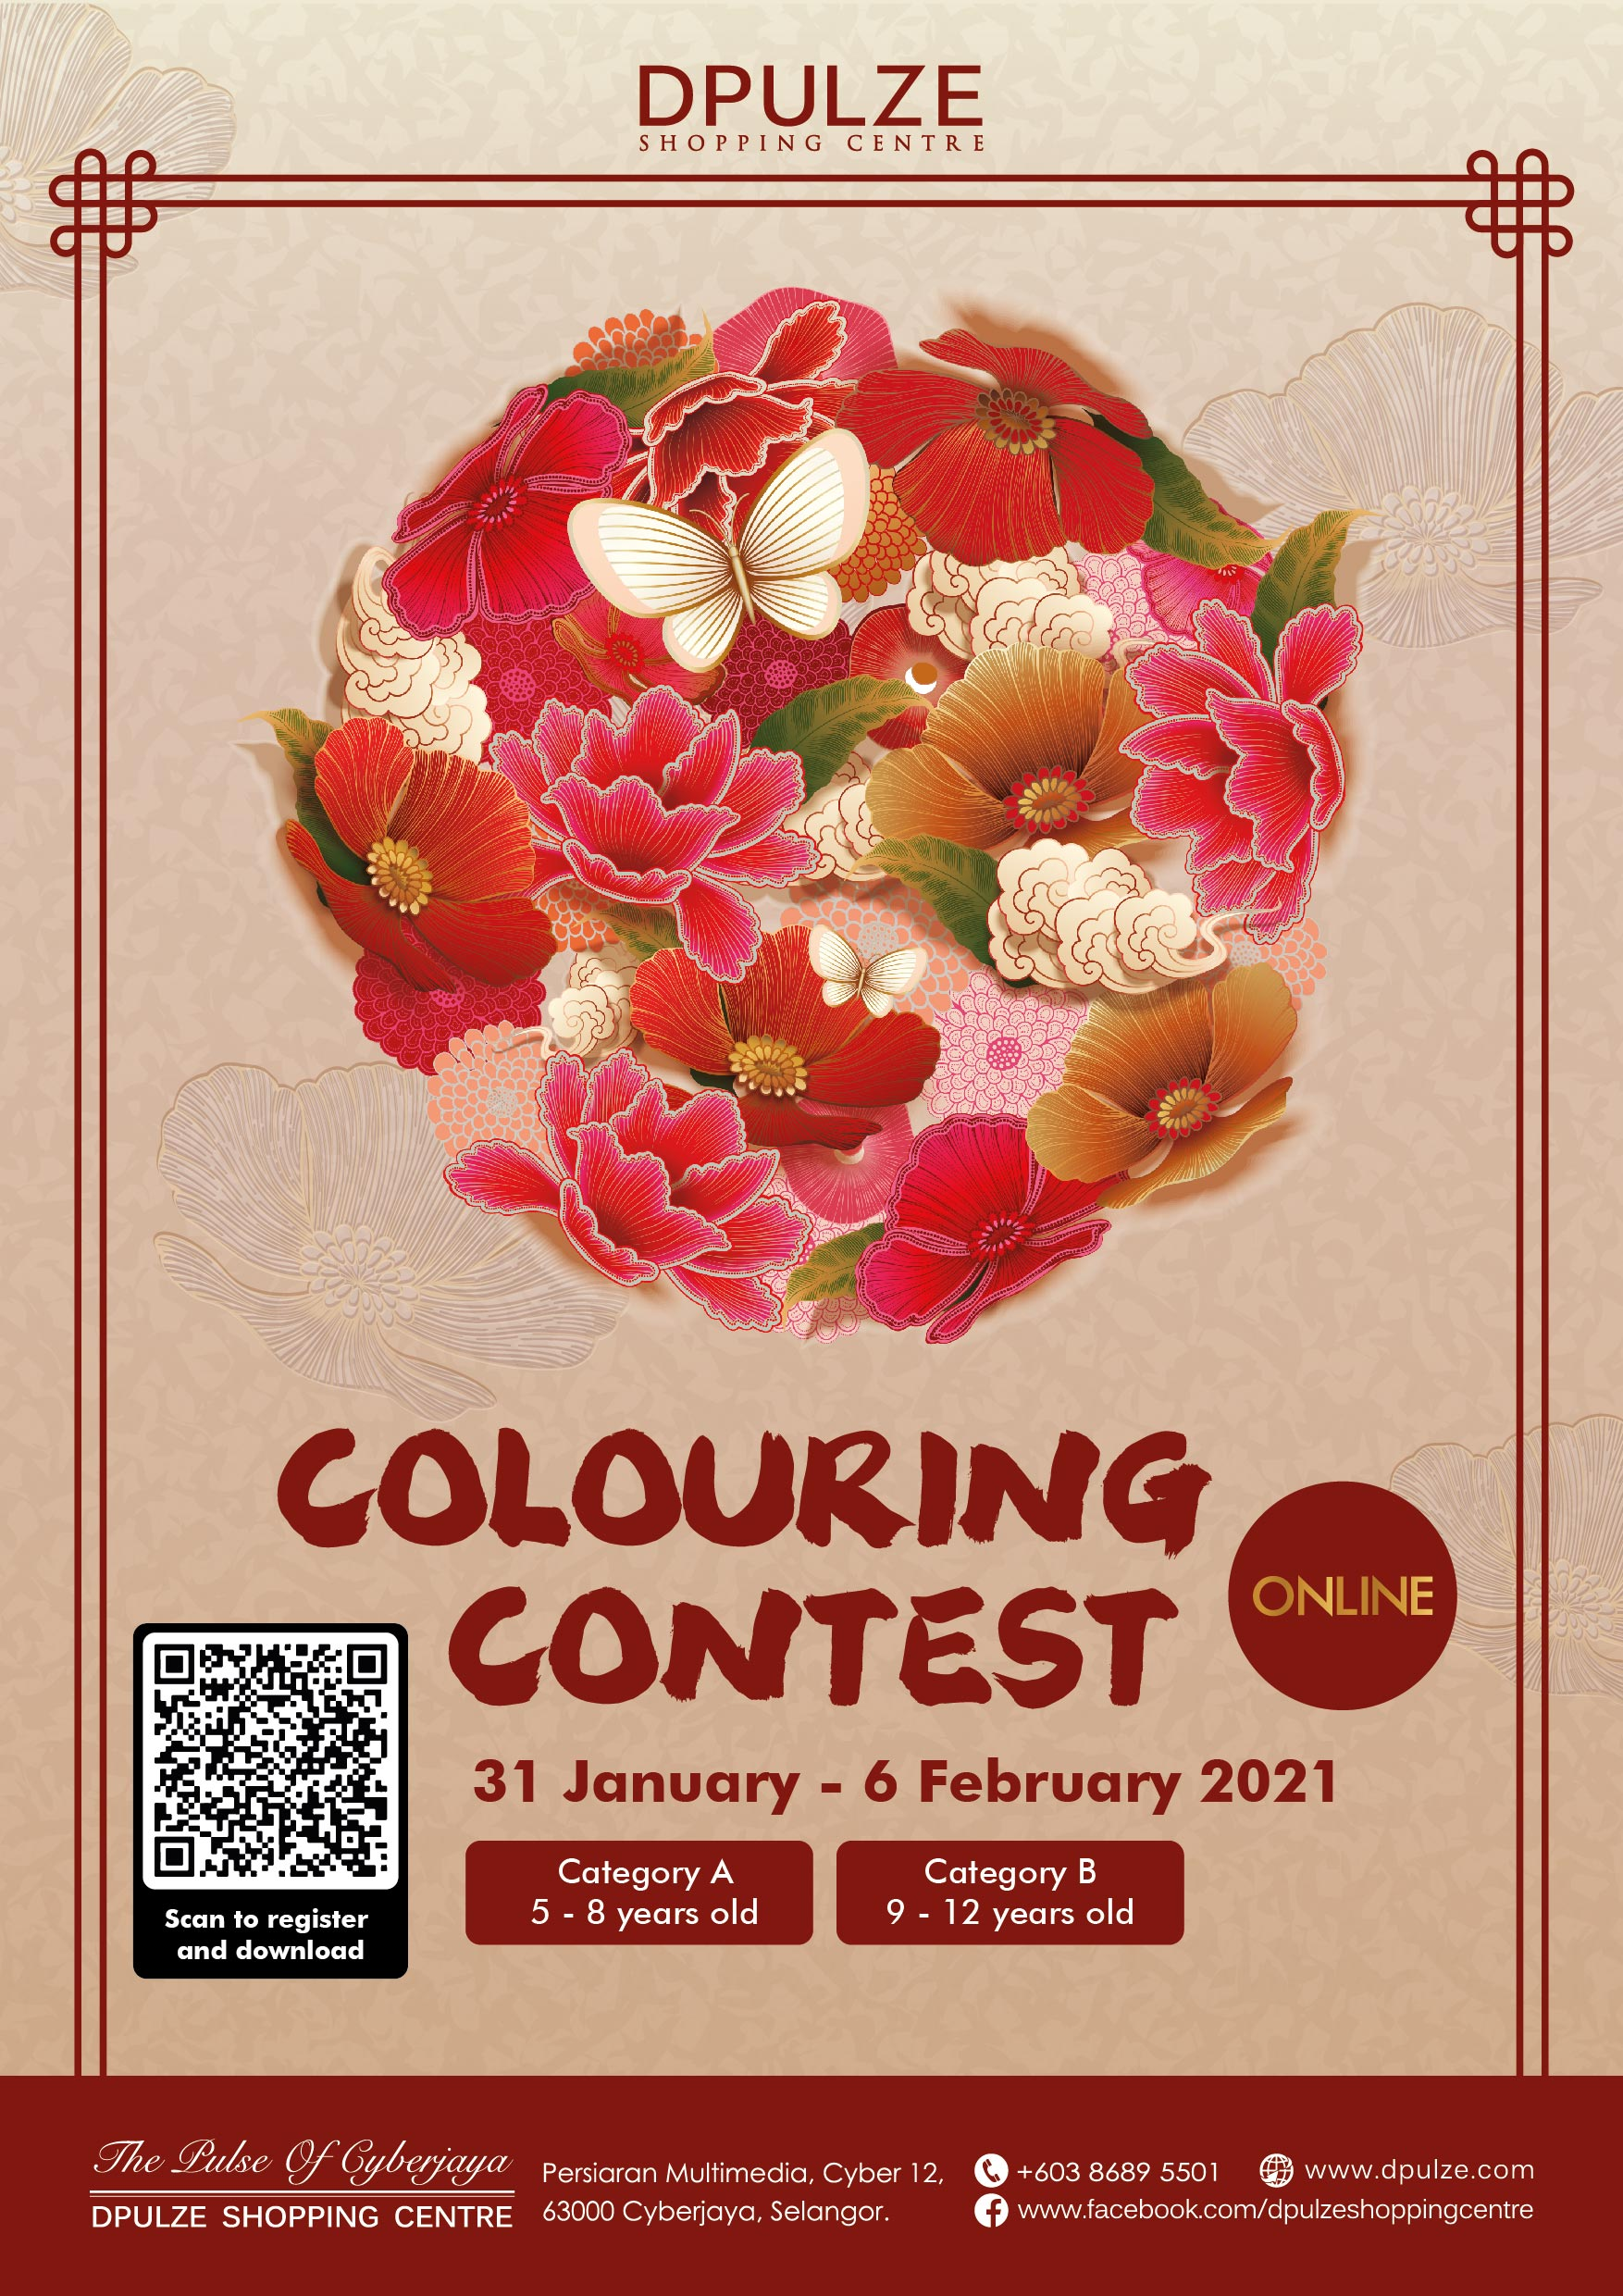 DPULZE_CNY Colouring Contest_Poster_297x420mm-01